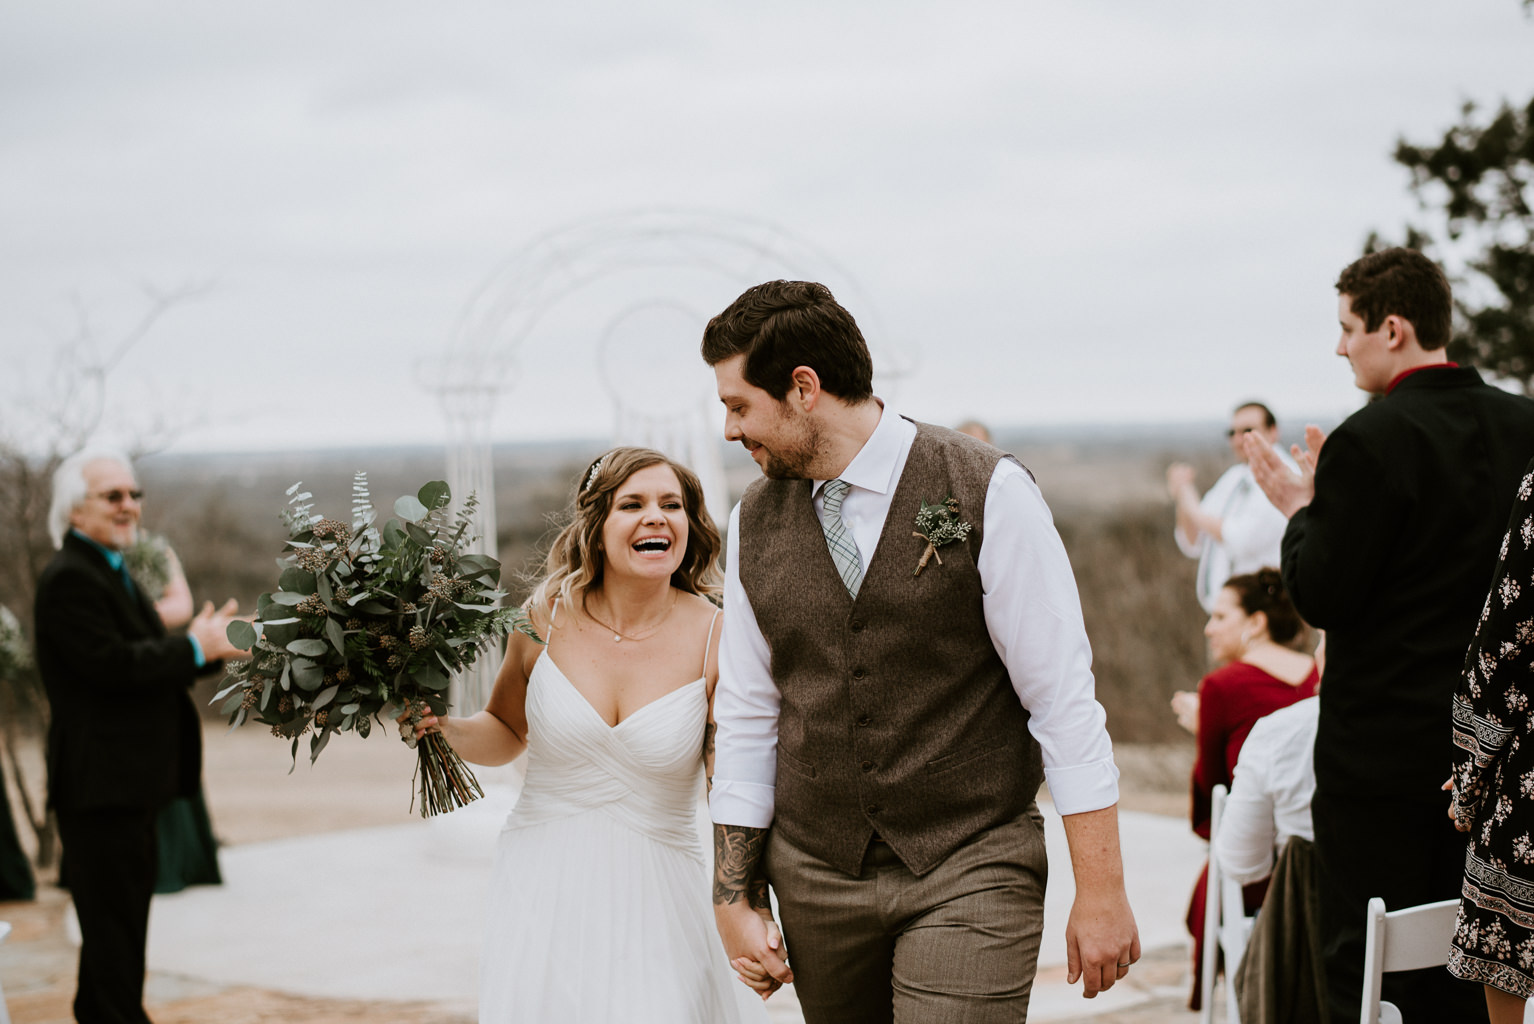 bride and groom walk down the aisle after wedding ceremony